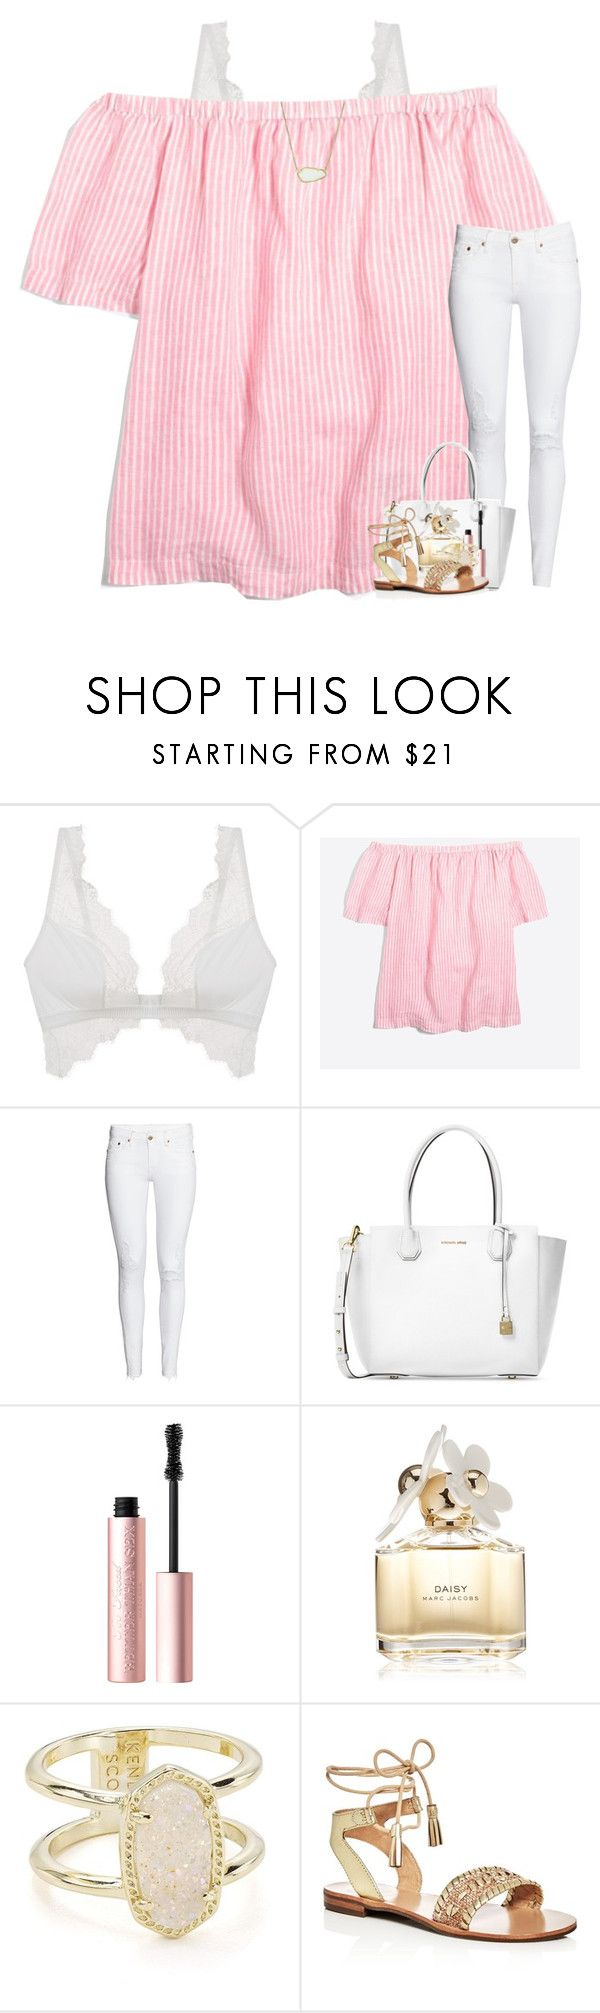 """my dad deployed today "" by preppymilitarybrat ❤ liked on Polyvore featuring Cosabella, J.Crew, Michael Kors, Too Faced Cosmetics, Marc Jacobs, Kendra Scott and Jack Rogers"